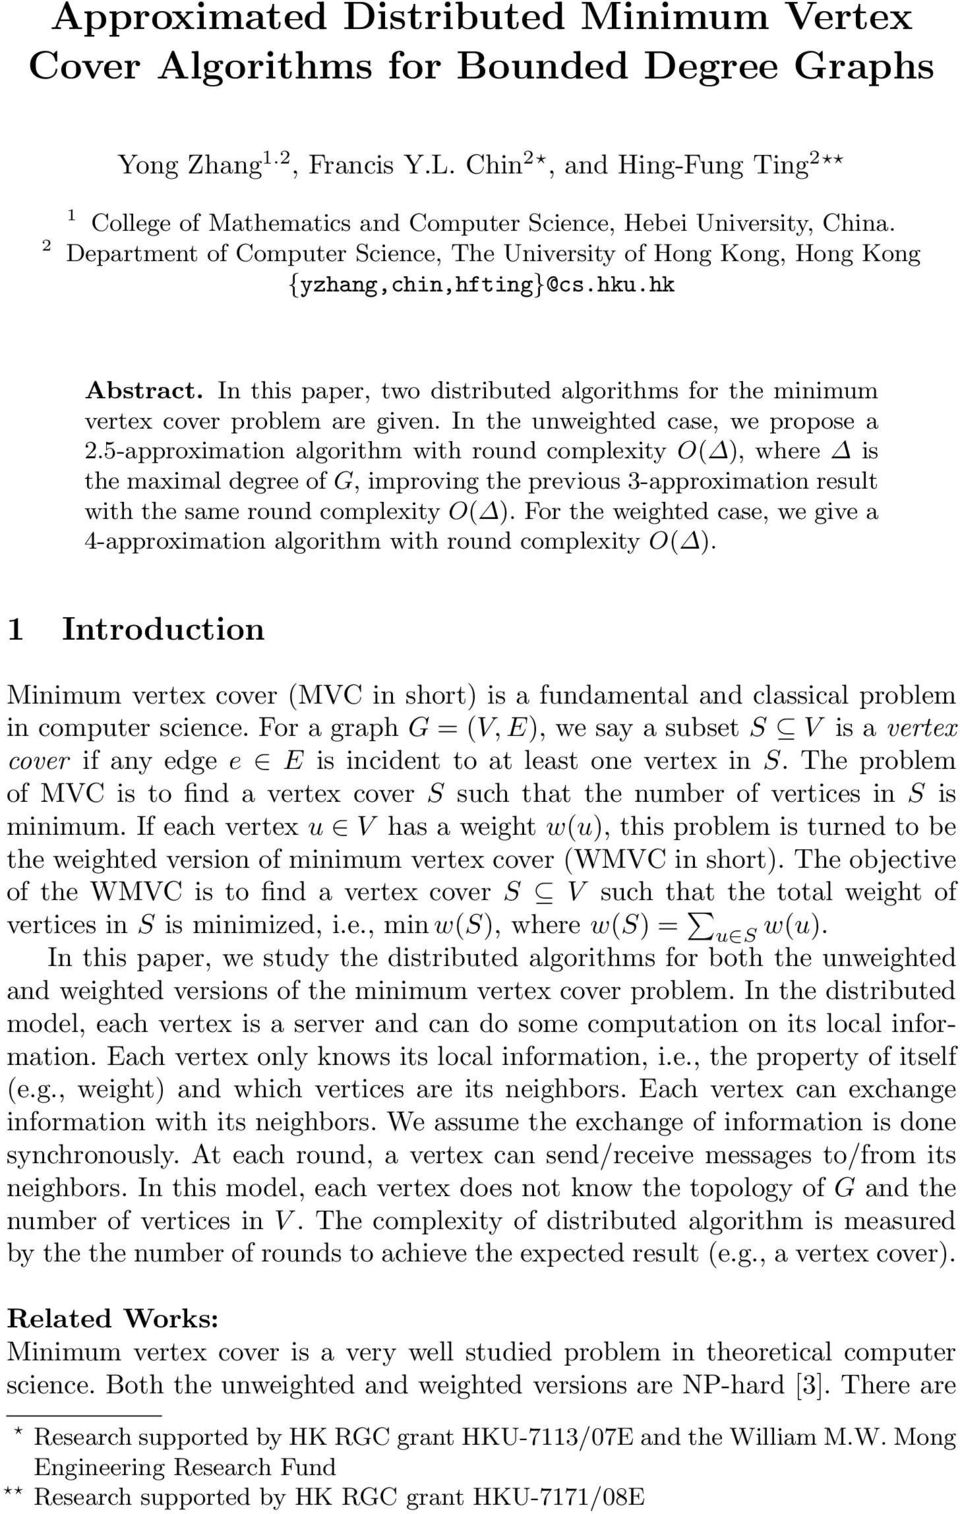 hku.hk Abstract. In this paper, two distributed algorithms for the minimum vertex cover problem are given. In the unweighted case, we propose a 2.